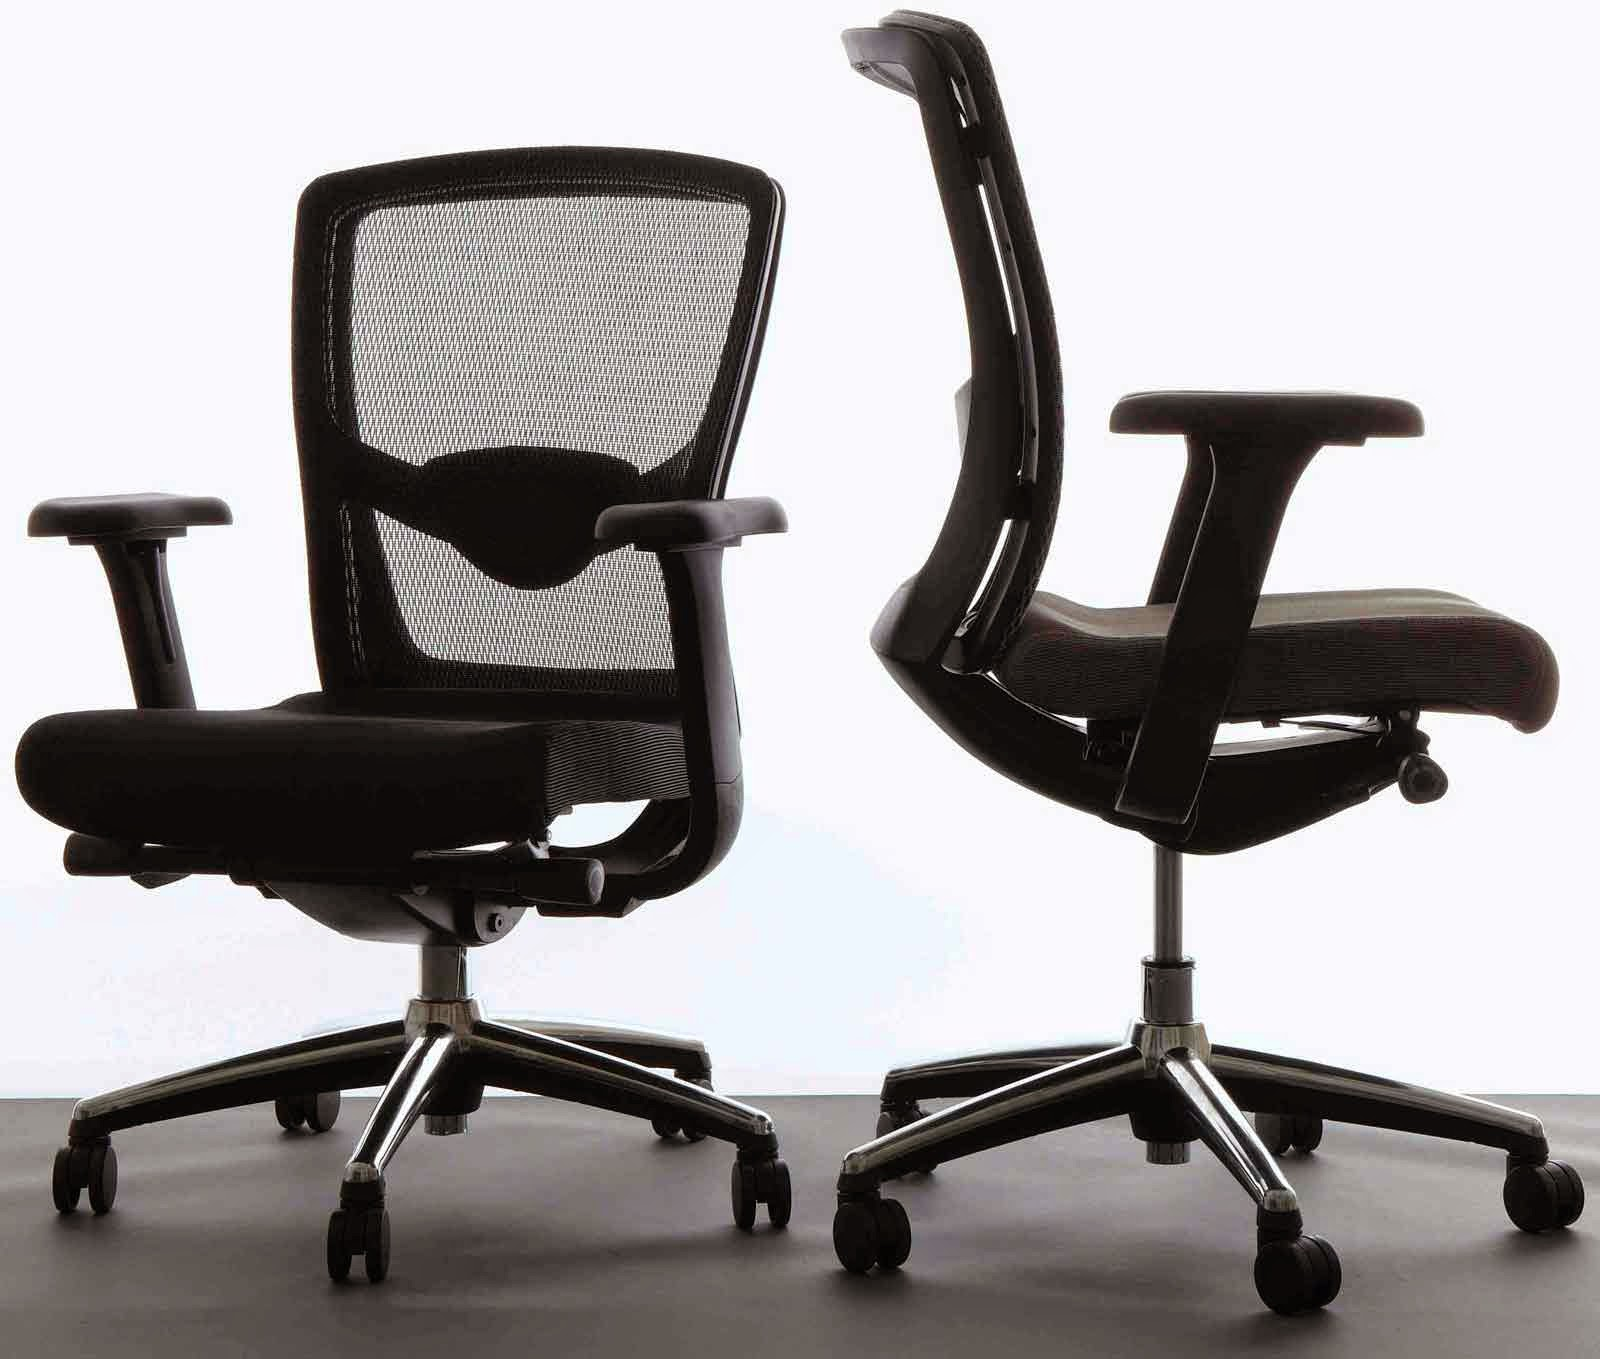 Office Chair For Short Person Vivaoffice Chair Choice Ergonomic Office Chairs For Petite People